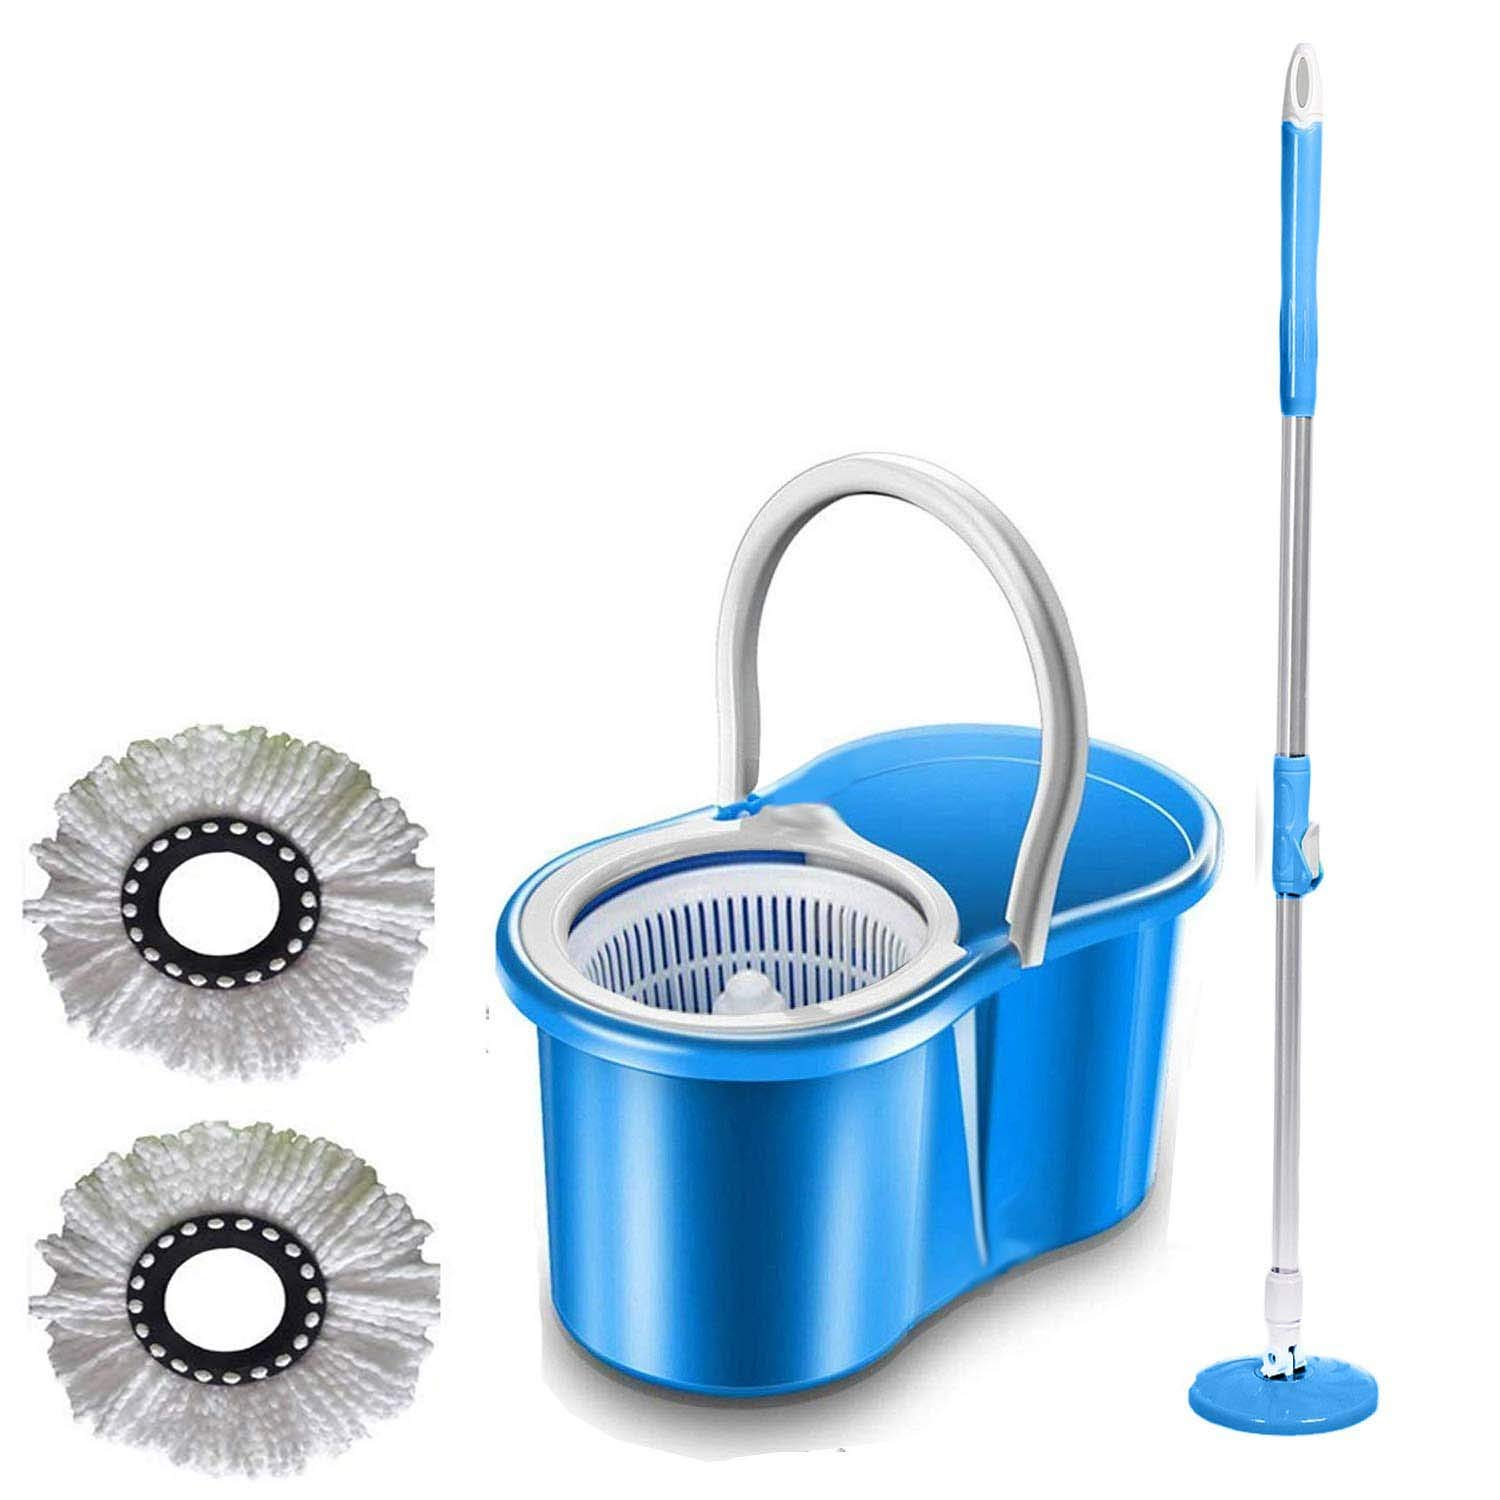 Best 360 spin mop and bucket India 2021